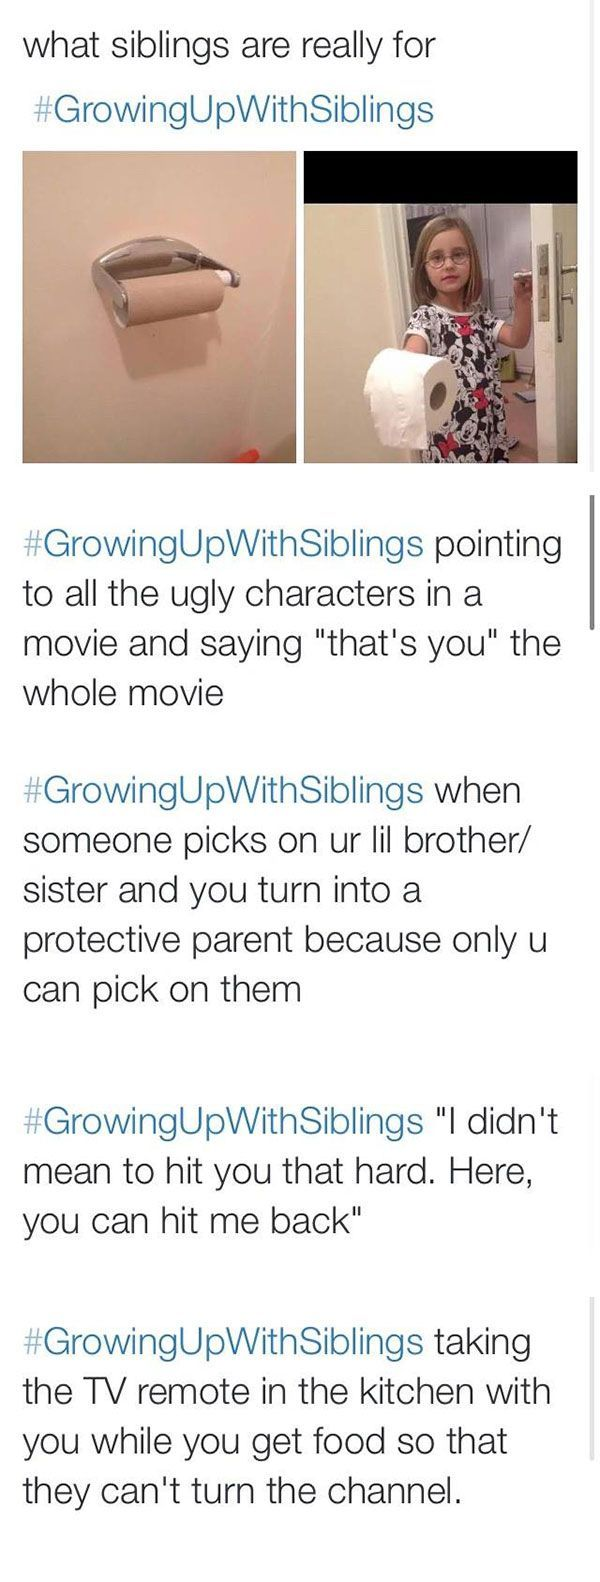 The second one is so true! My older brother and I still do that and we're 18 and 16